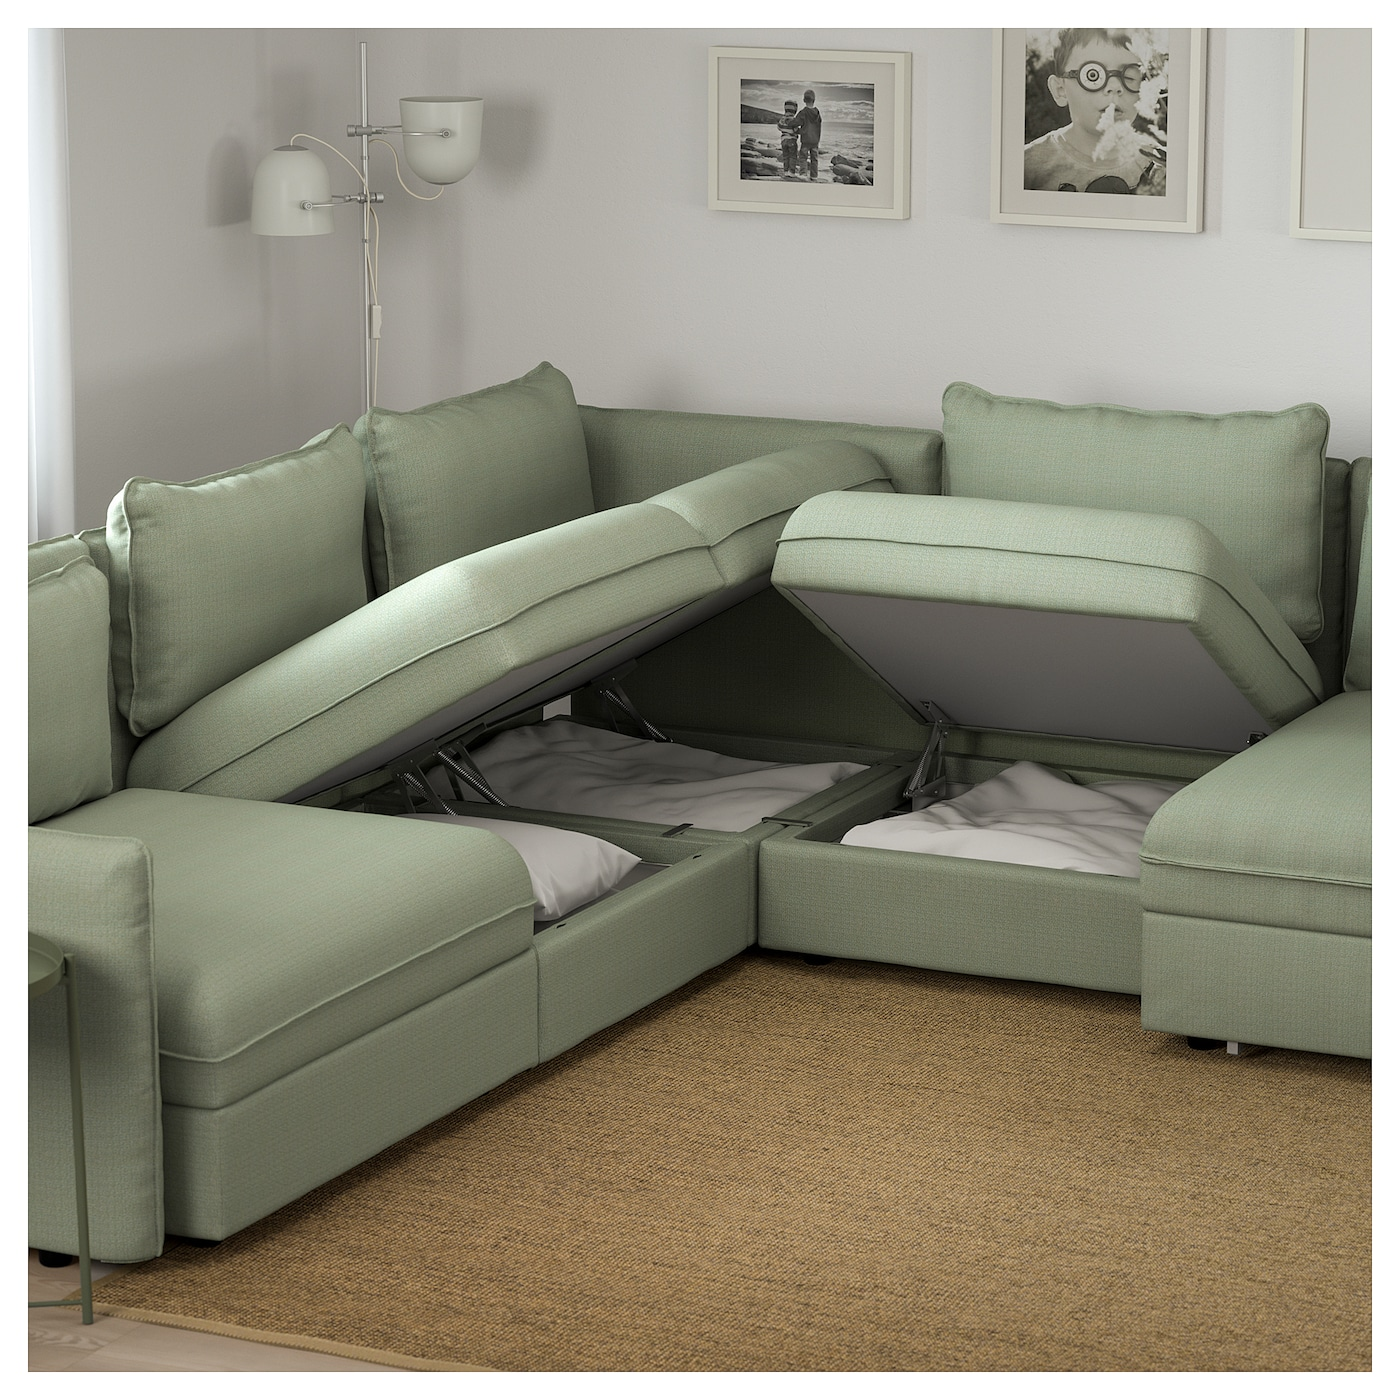 Vallentuna 6 seat corner sofa with bed hillared green ikea - Vallentuna ikea ...